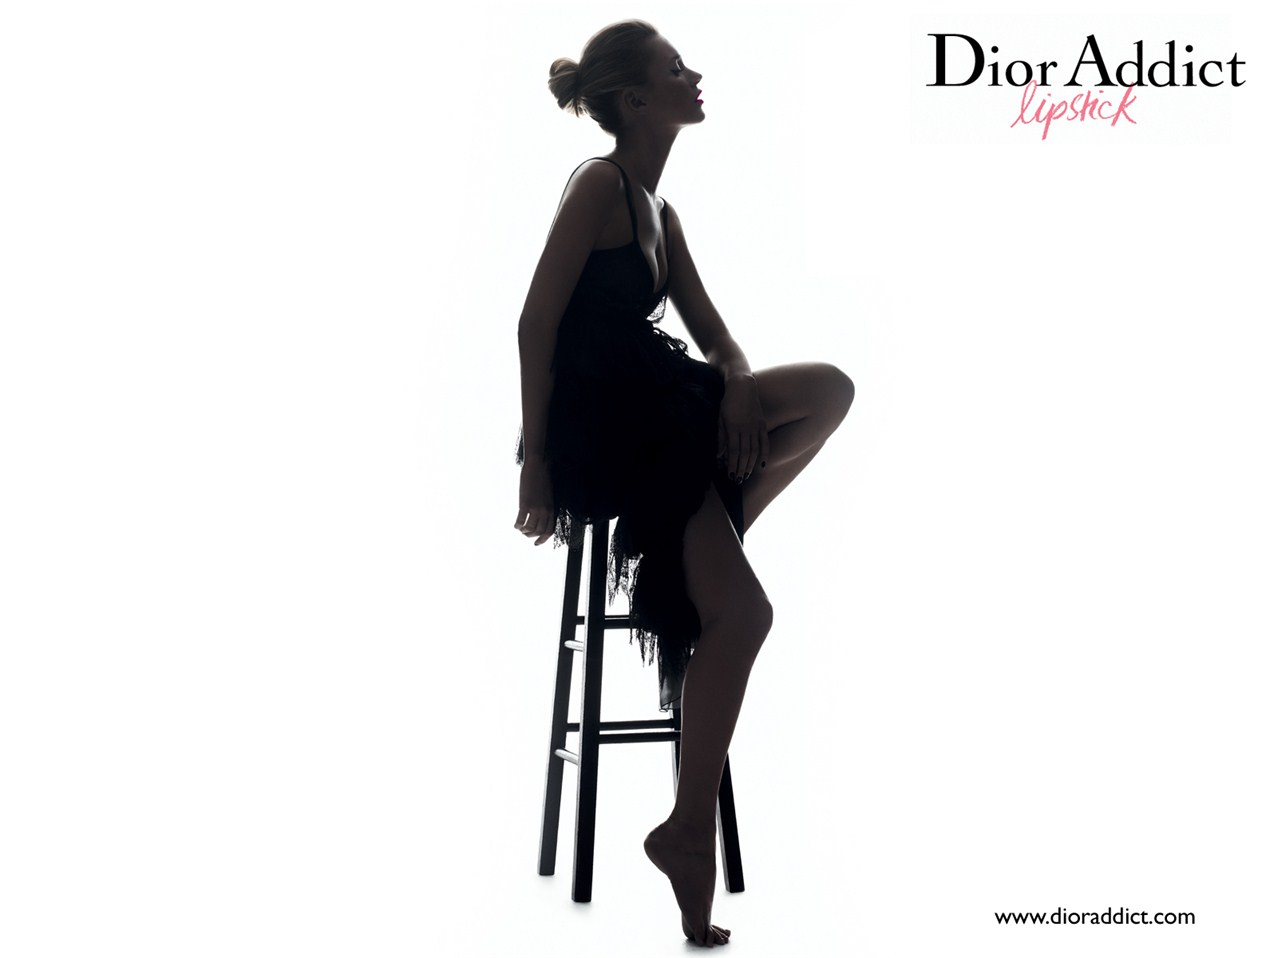 Кейт Мосс / Kate Moss by David Sims for Dior Addict